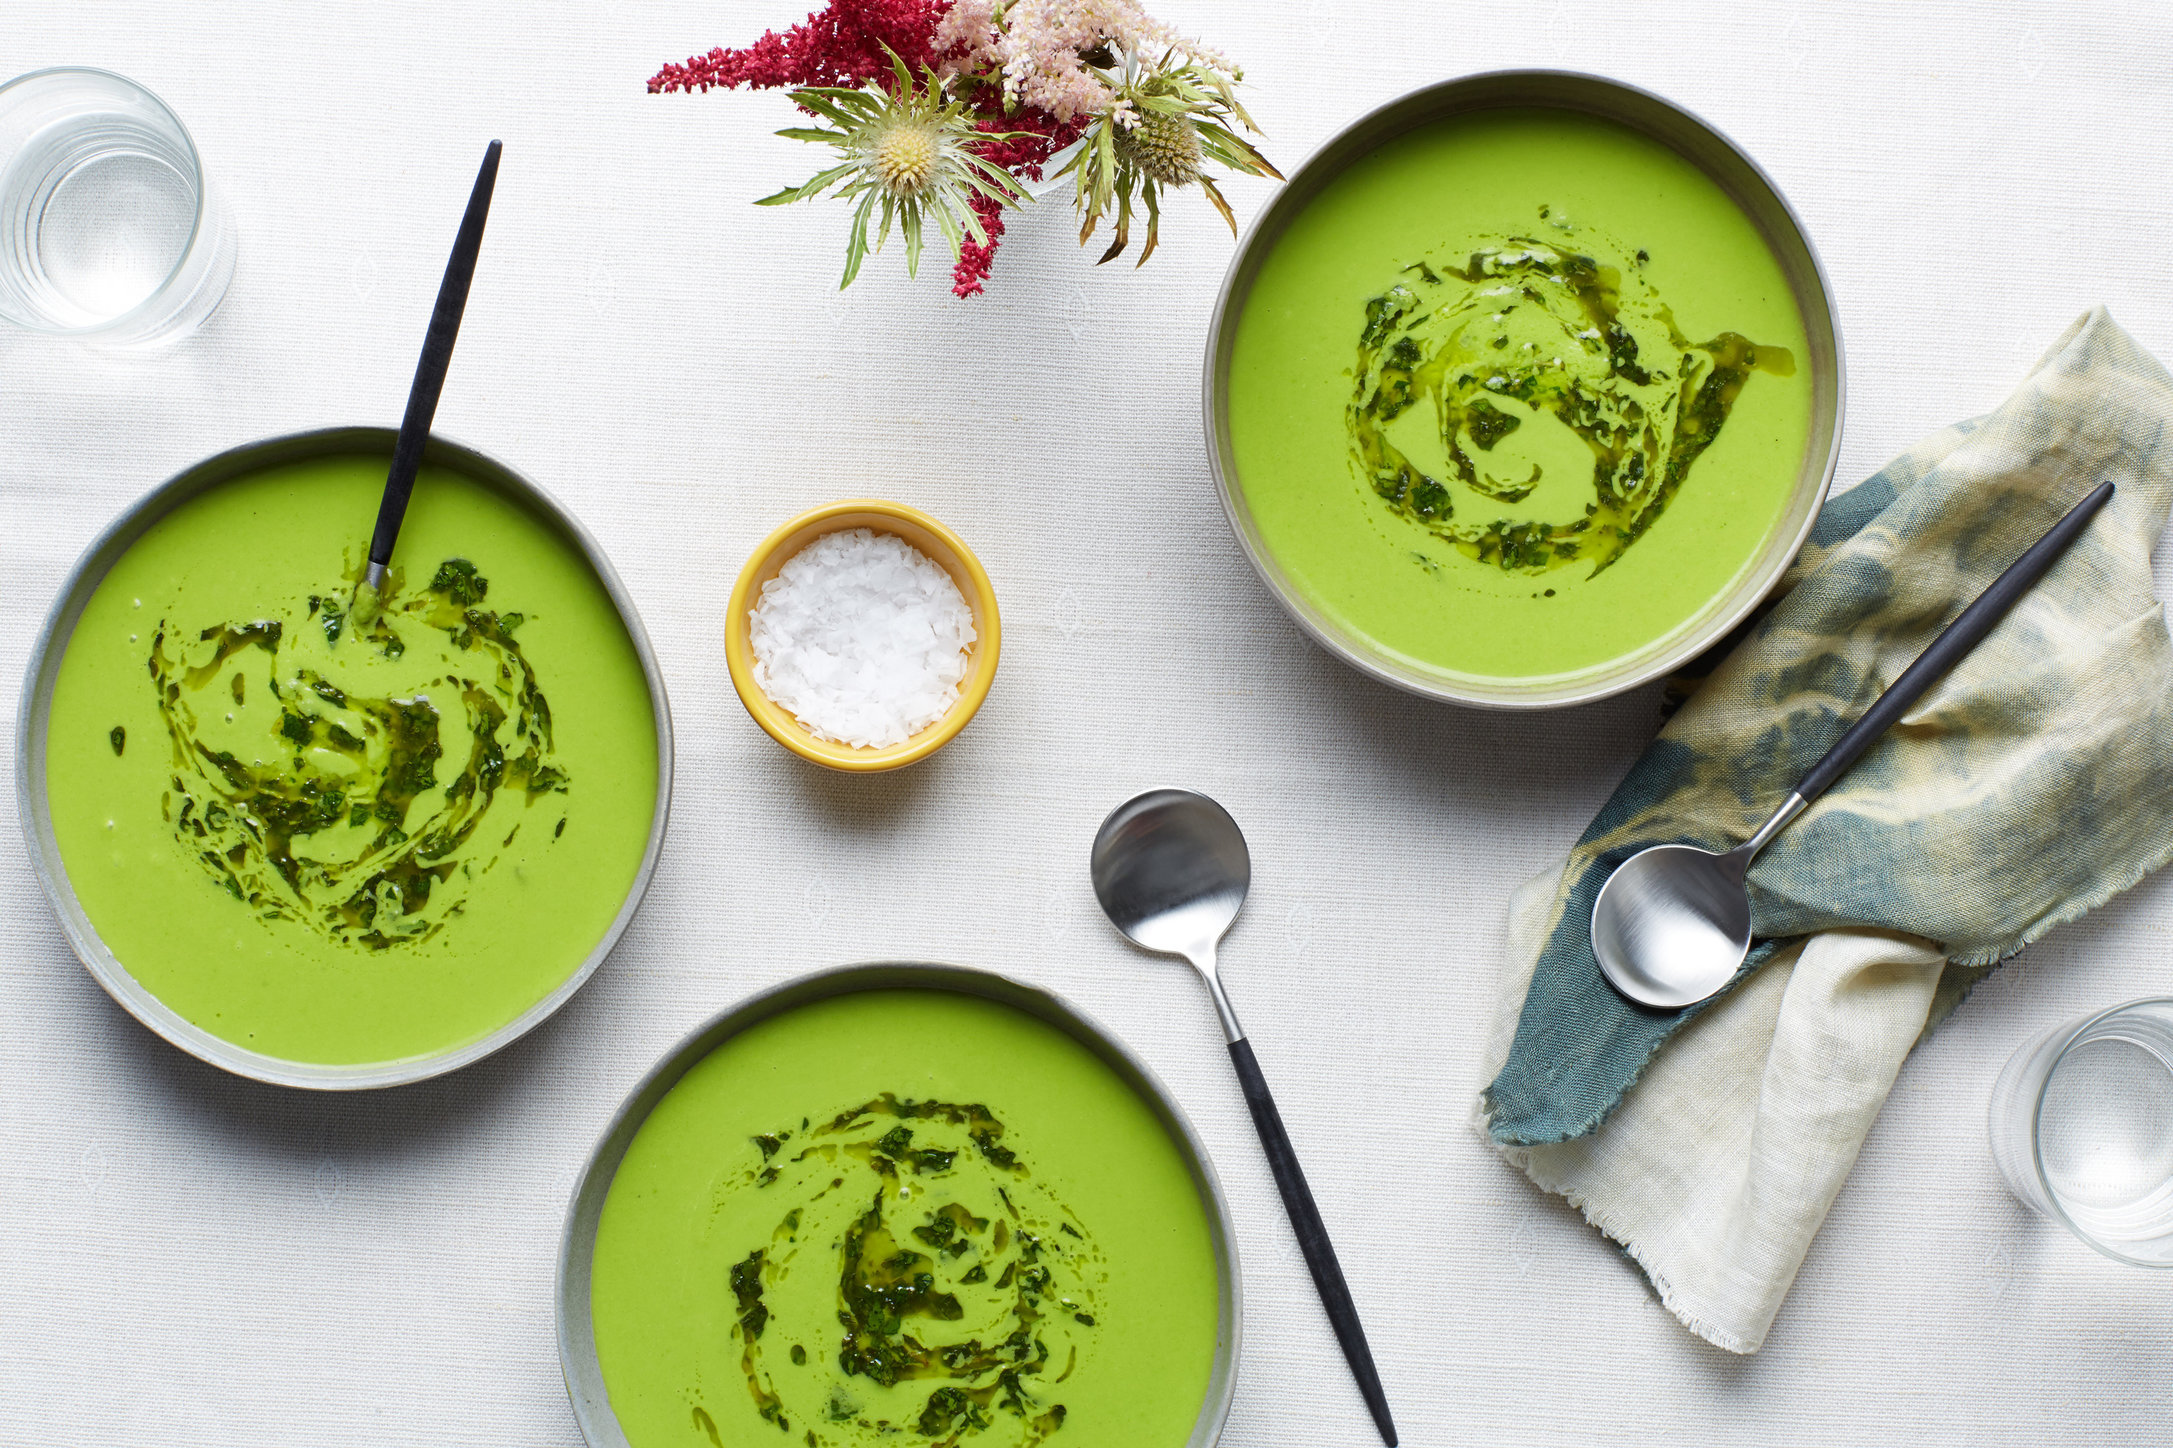 EP_06172015_50dollardinnerpart_Cold-Pea-Soup-With-Herbed-Oil-Swirl_6x4.jpg